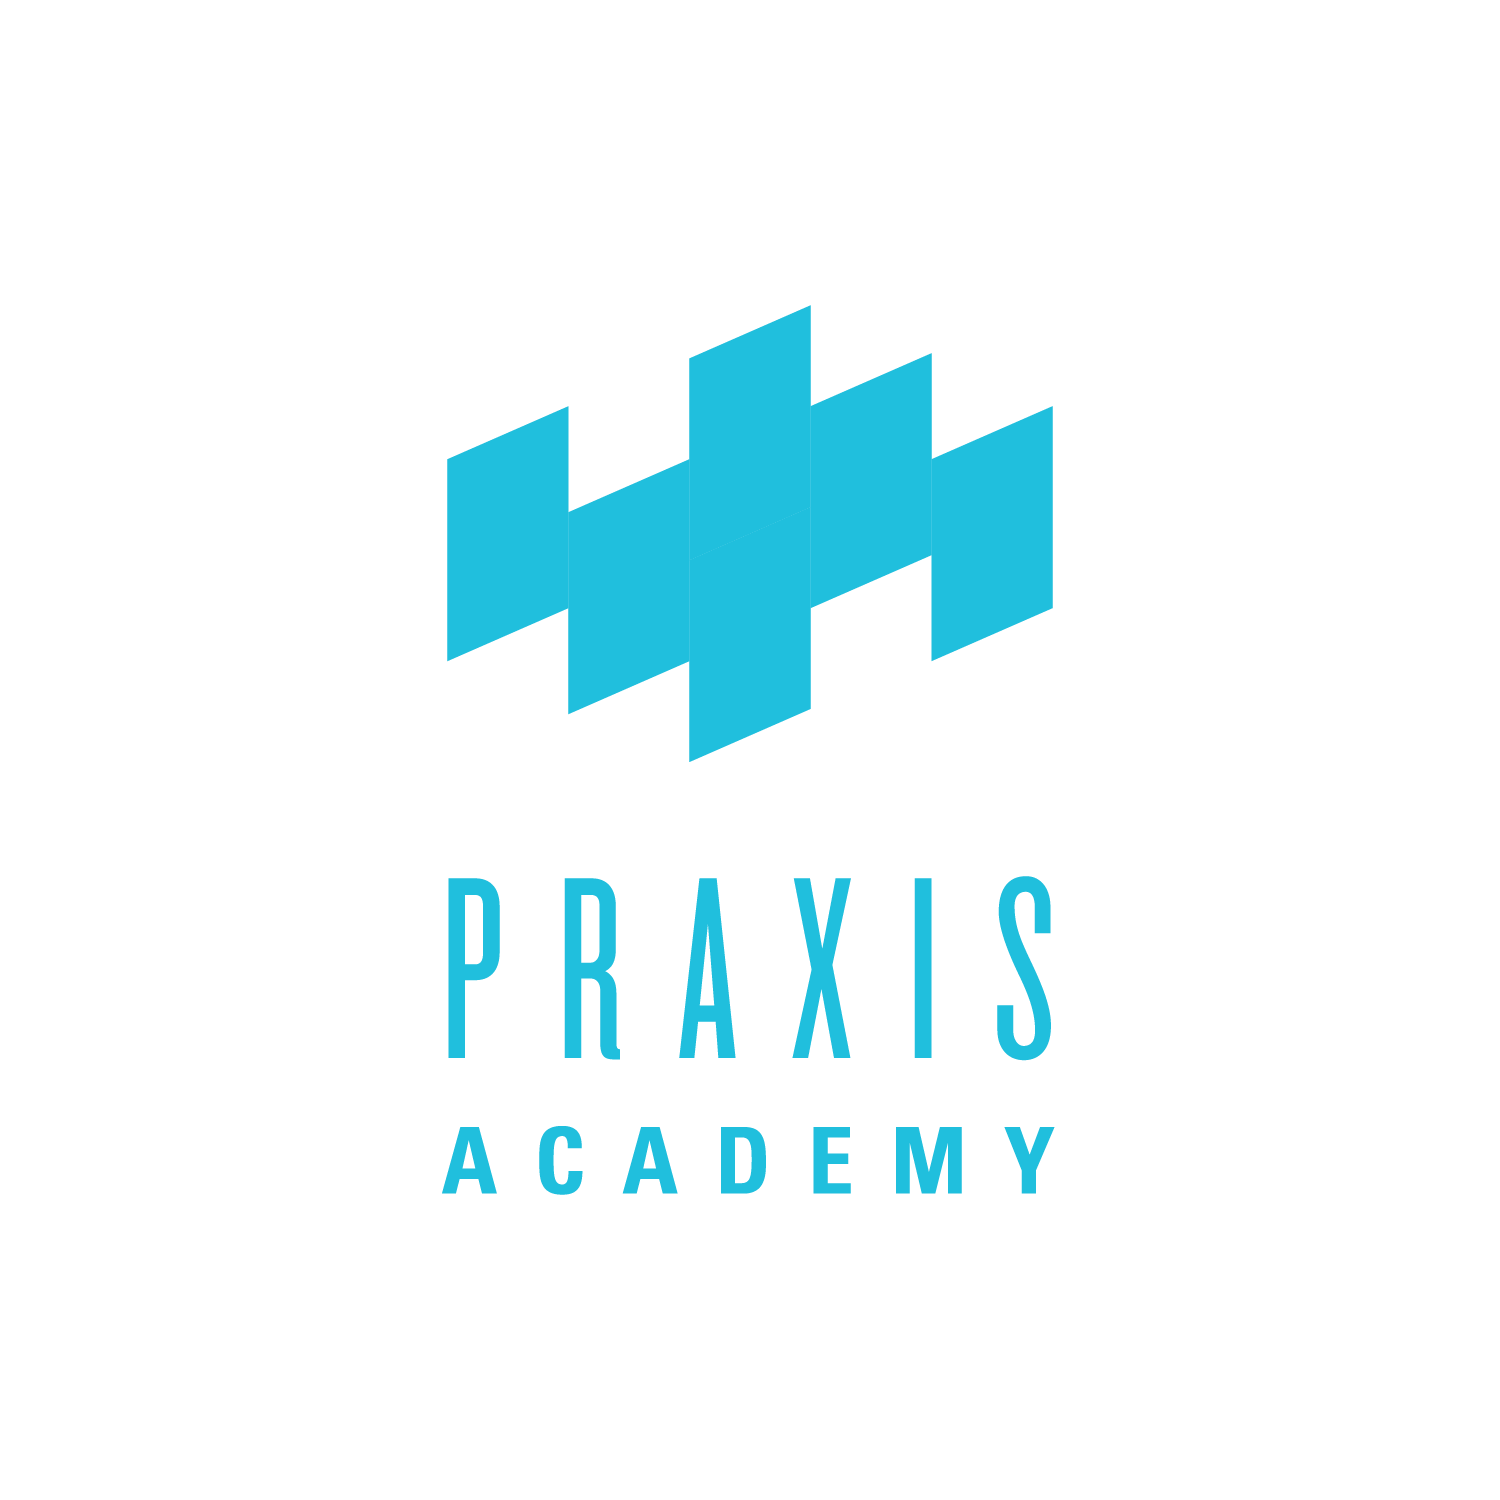 Academy_logo_color.png